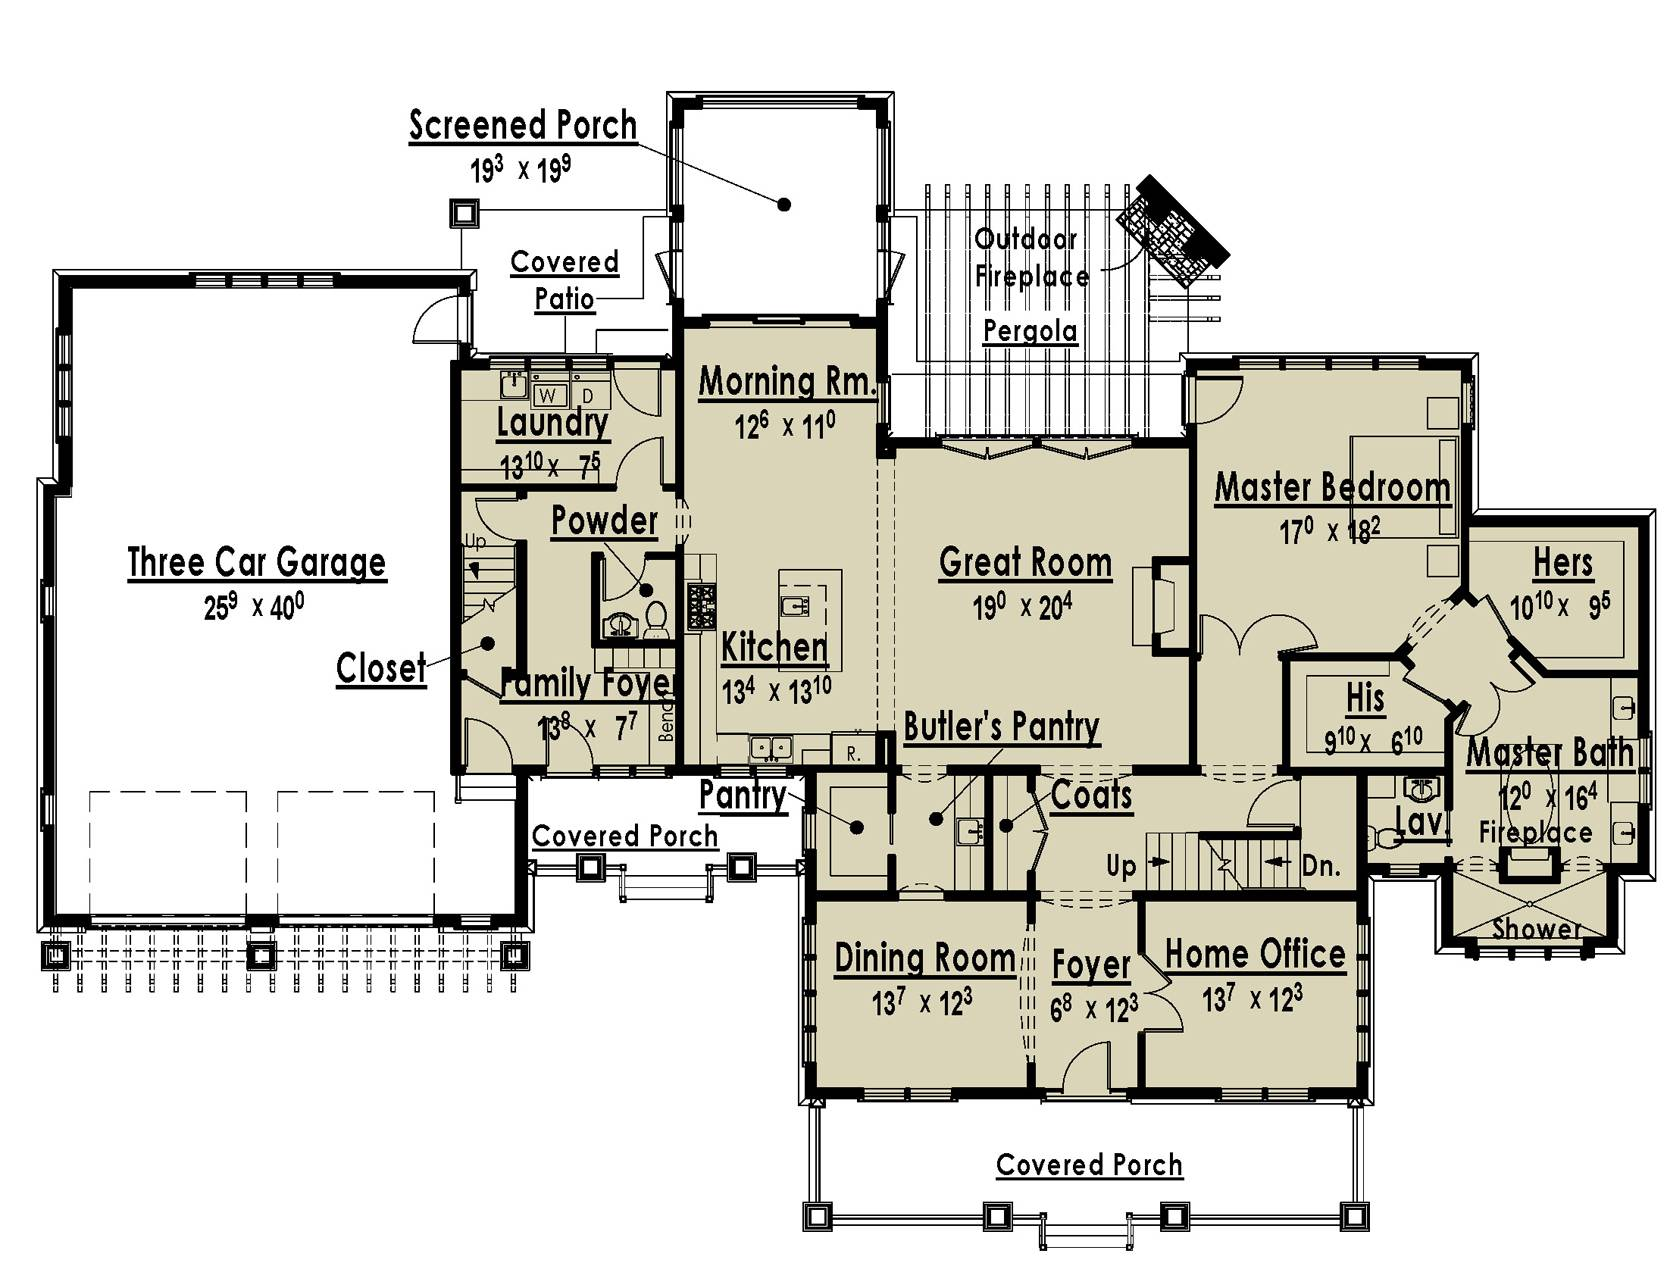 Luxury House Plans wo Master Suites - rts - ^